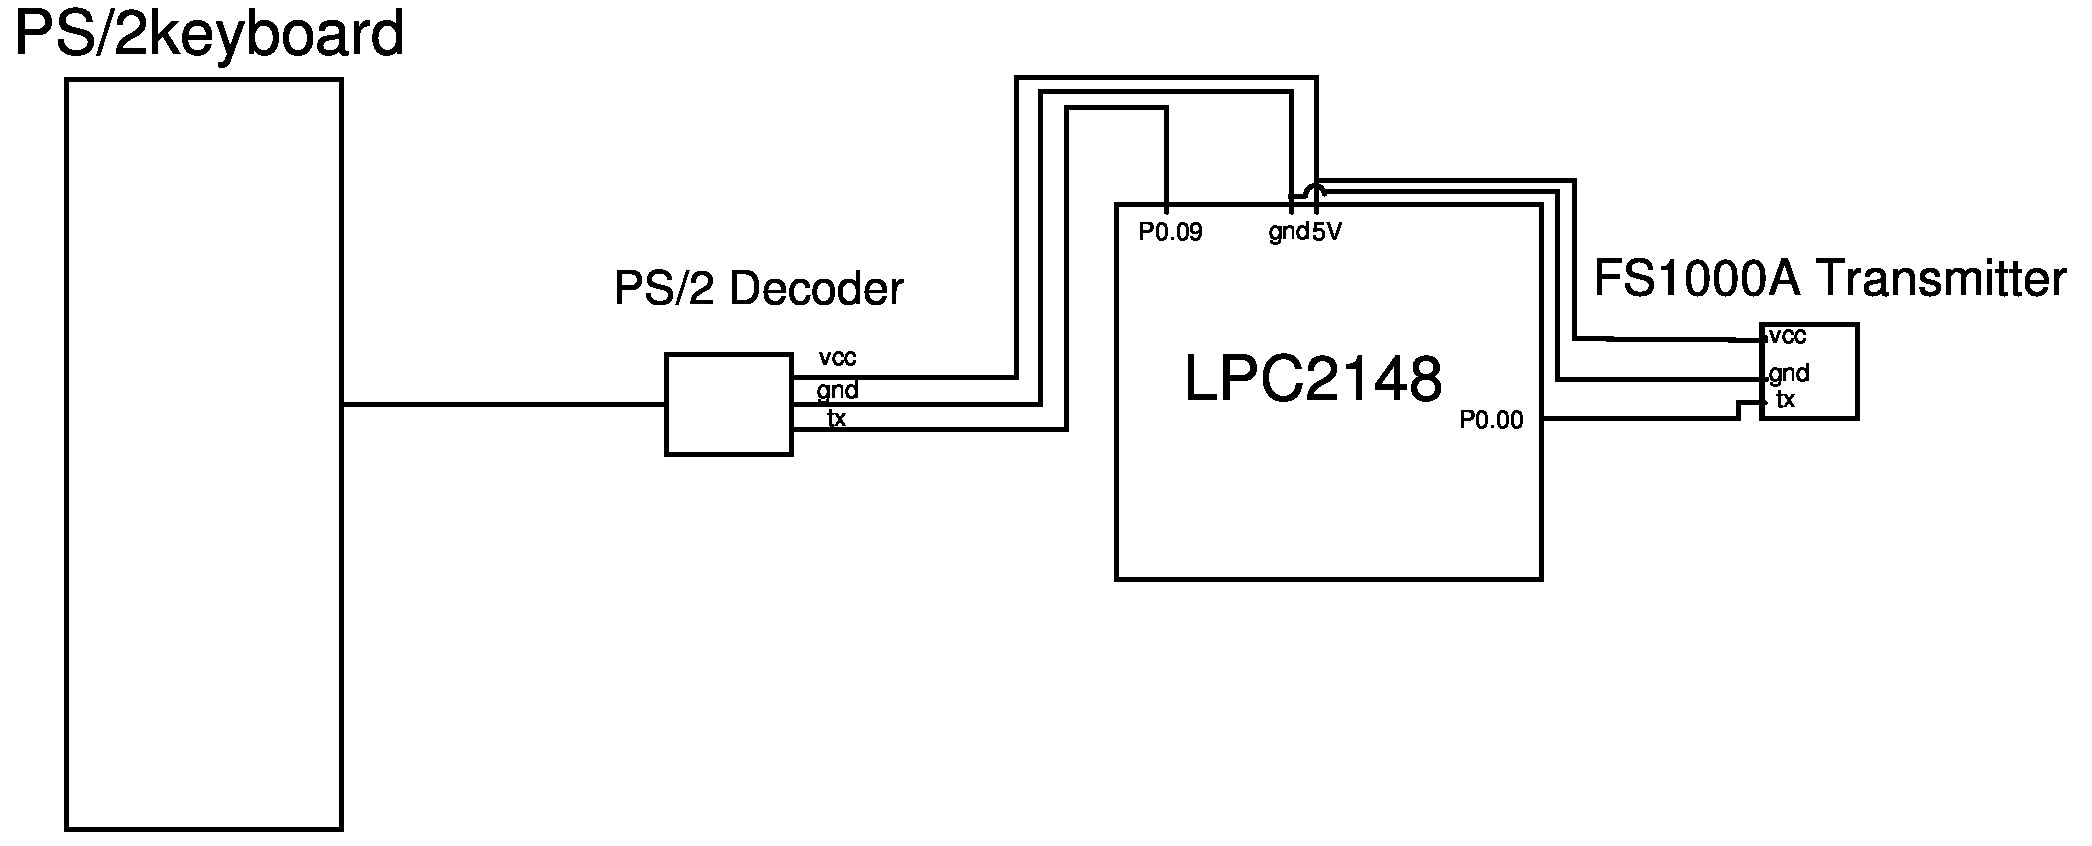 Instructions | An RF Adapter to Make a PS2 Keyboard Wireless